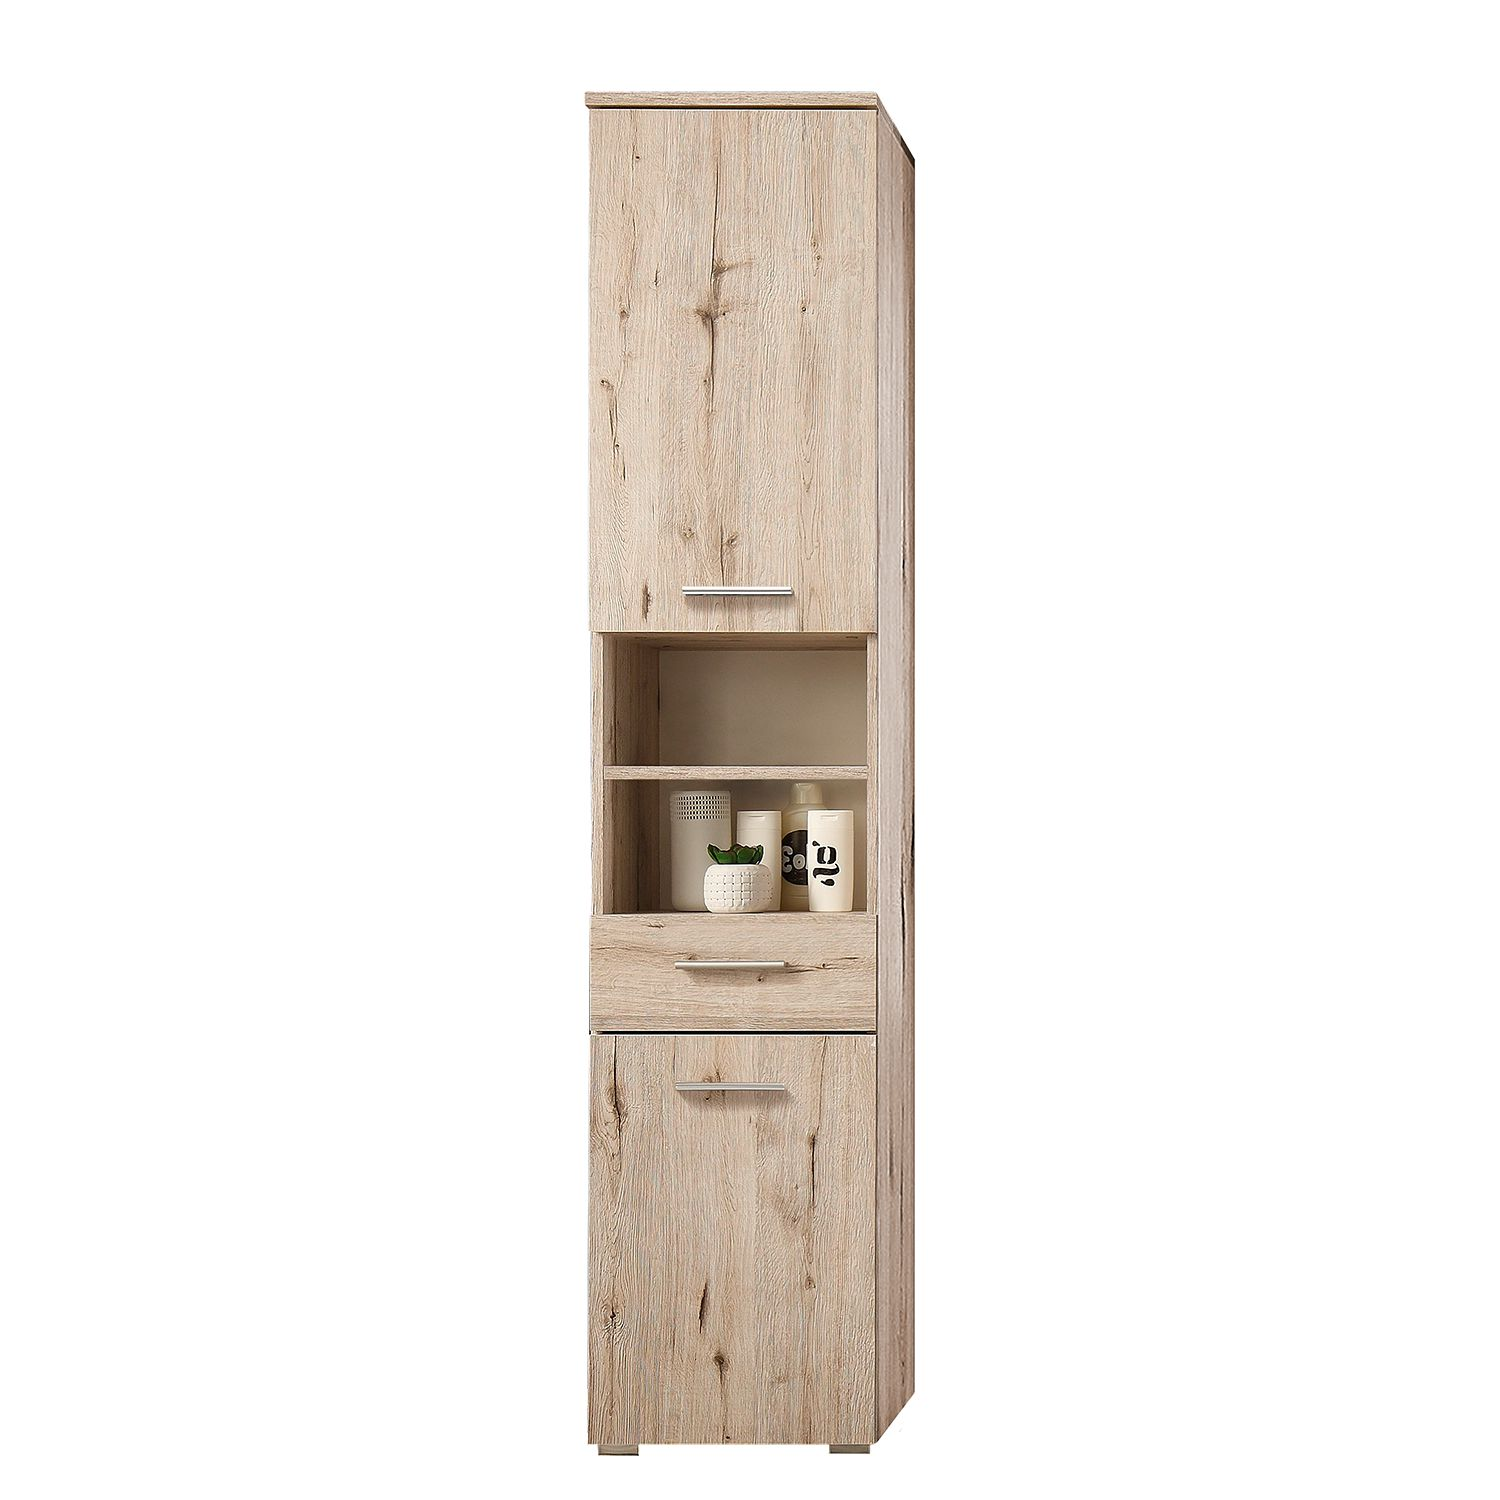 armoire haute morson ch ne sabl mooved par mooved chez. Black Bedroom Furniture Sets. Home Design Ideas